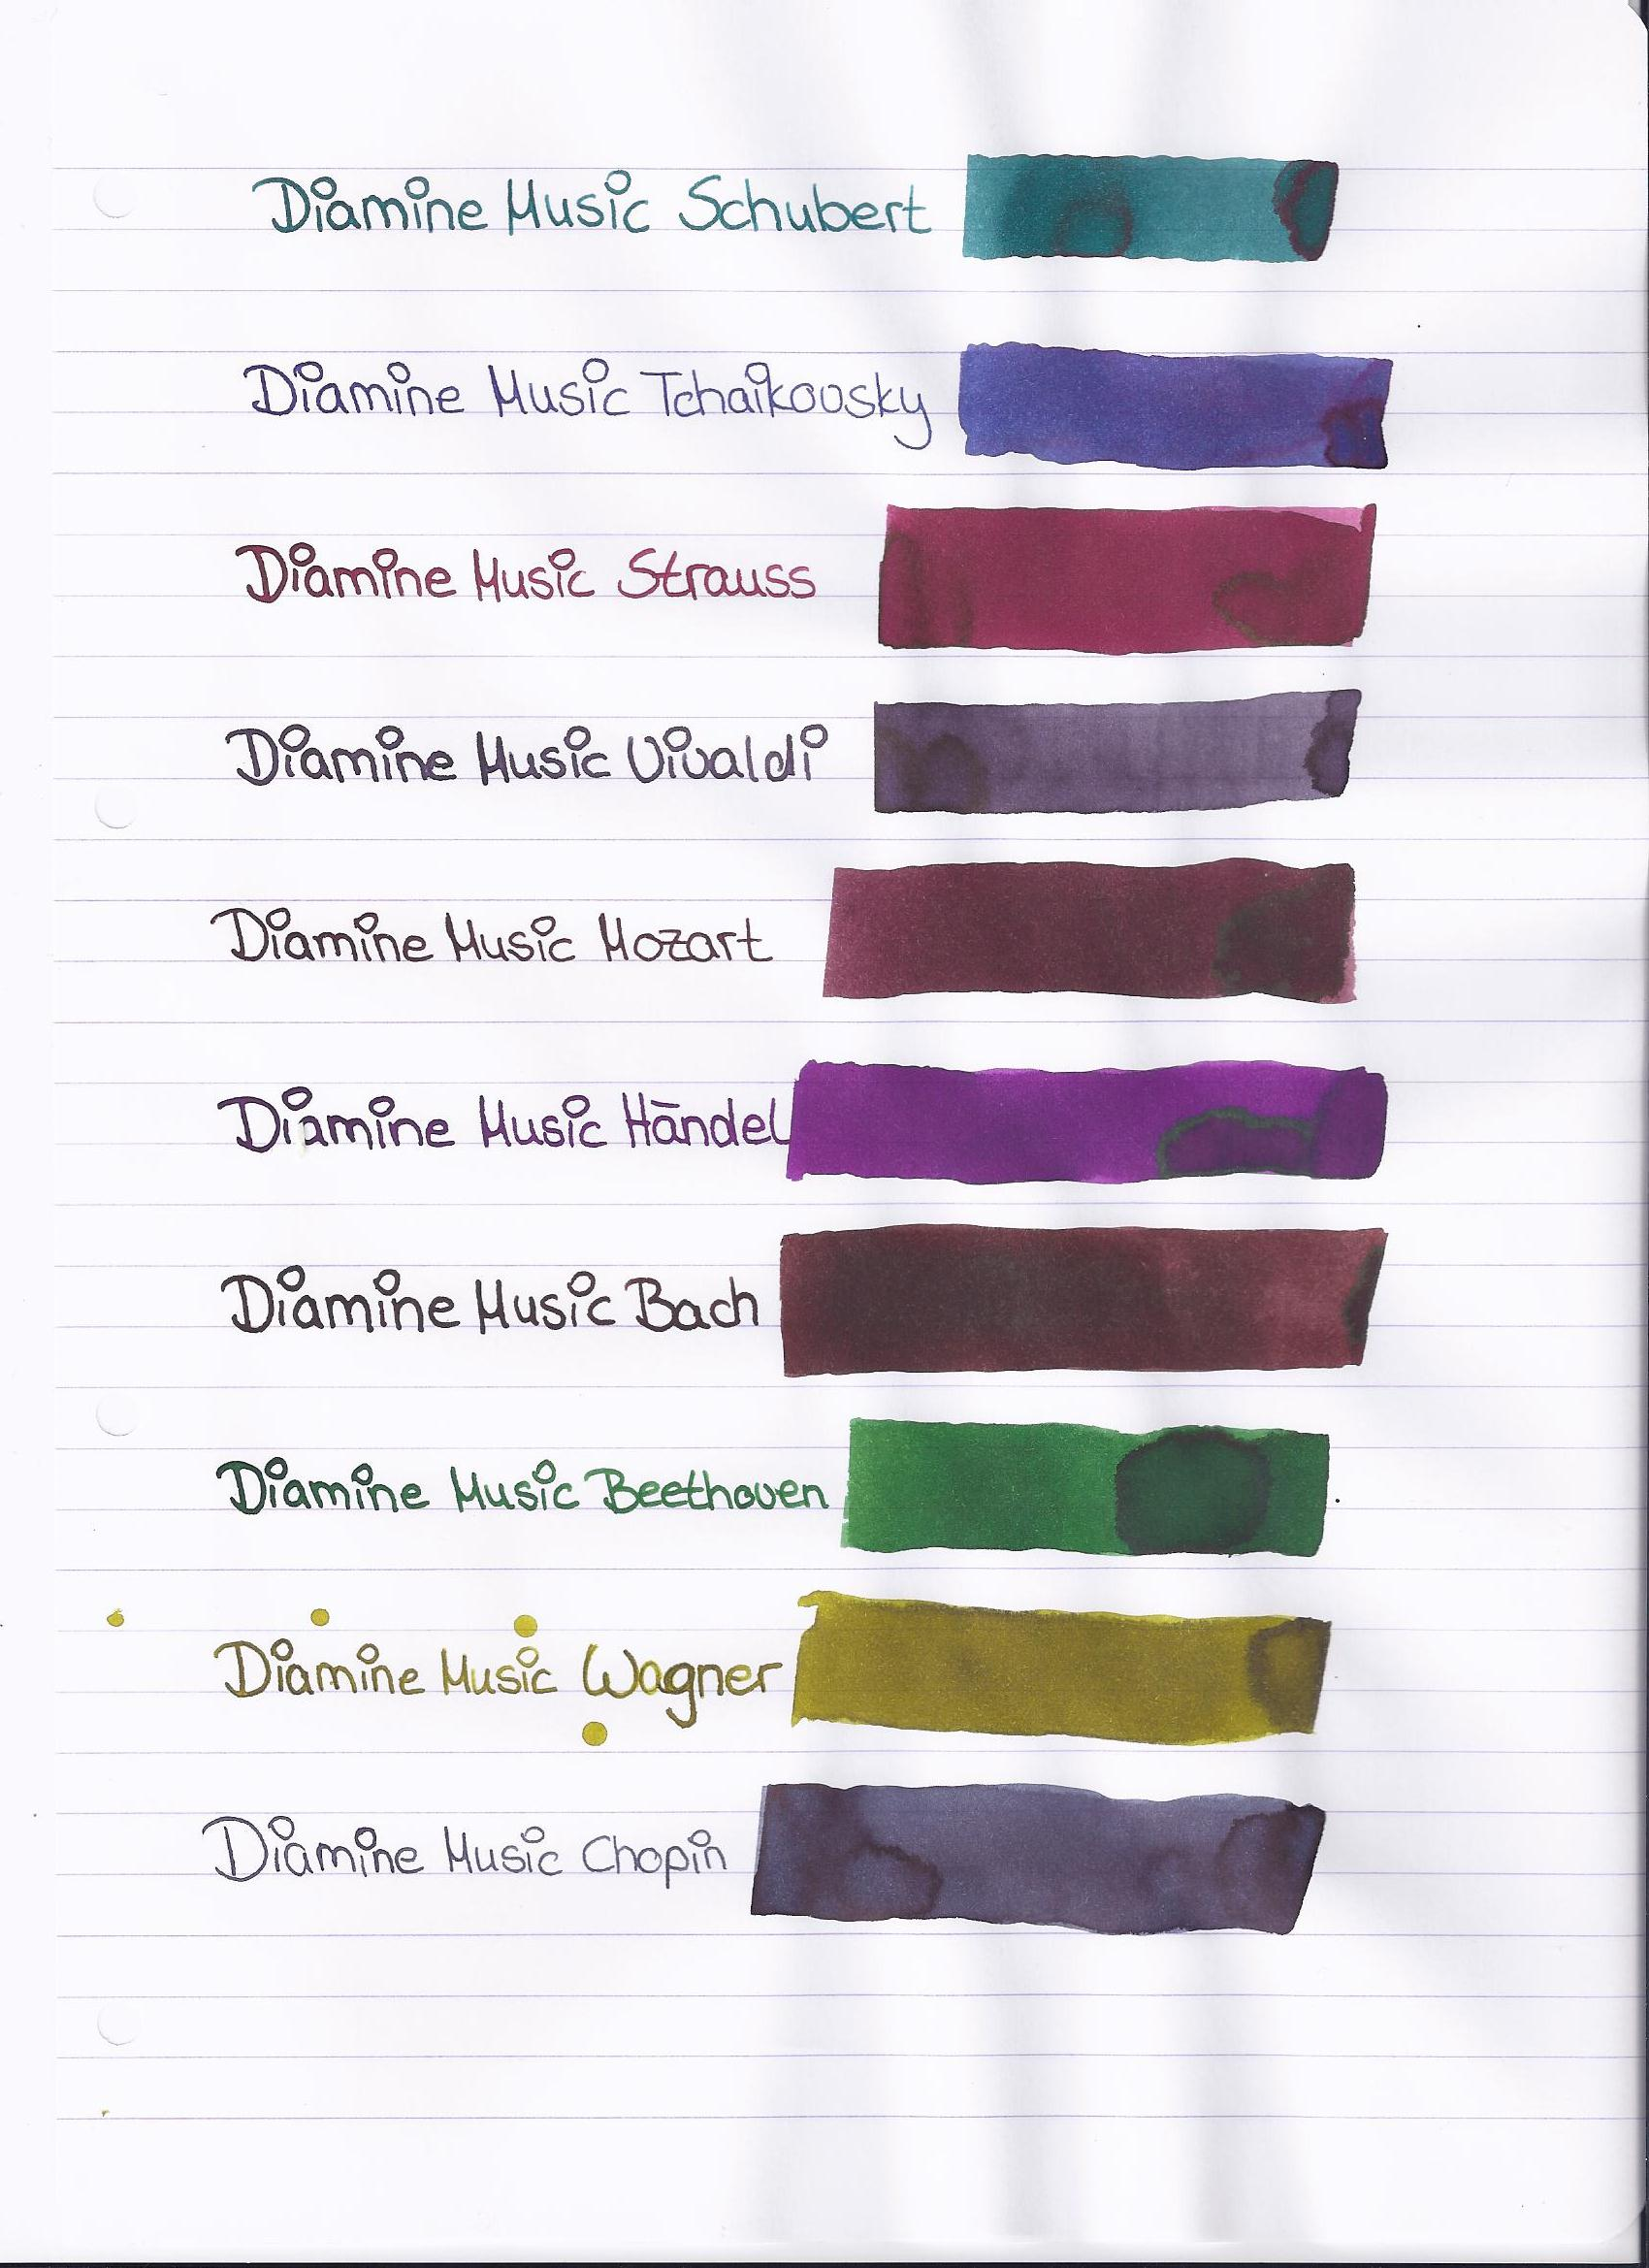 Diamine Music Set Scan